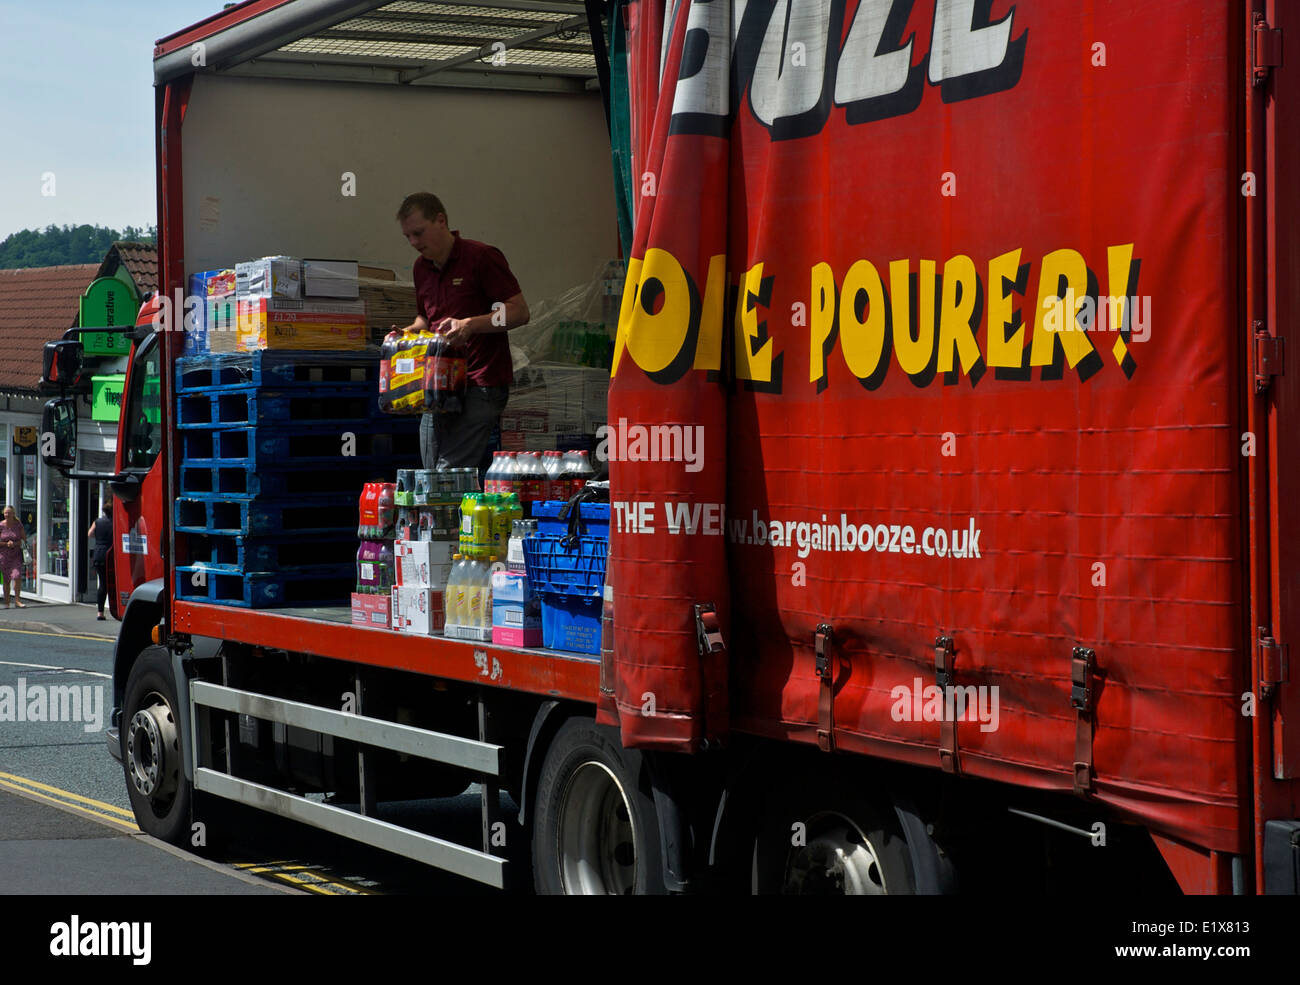 Man unloading Bargain Booze delivery lorry, Bowness, Lake District National Park, Cumbria, England UK - Stock Image